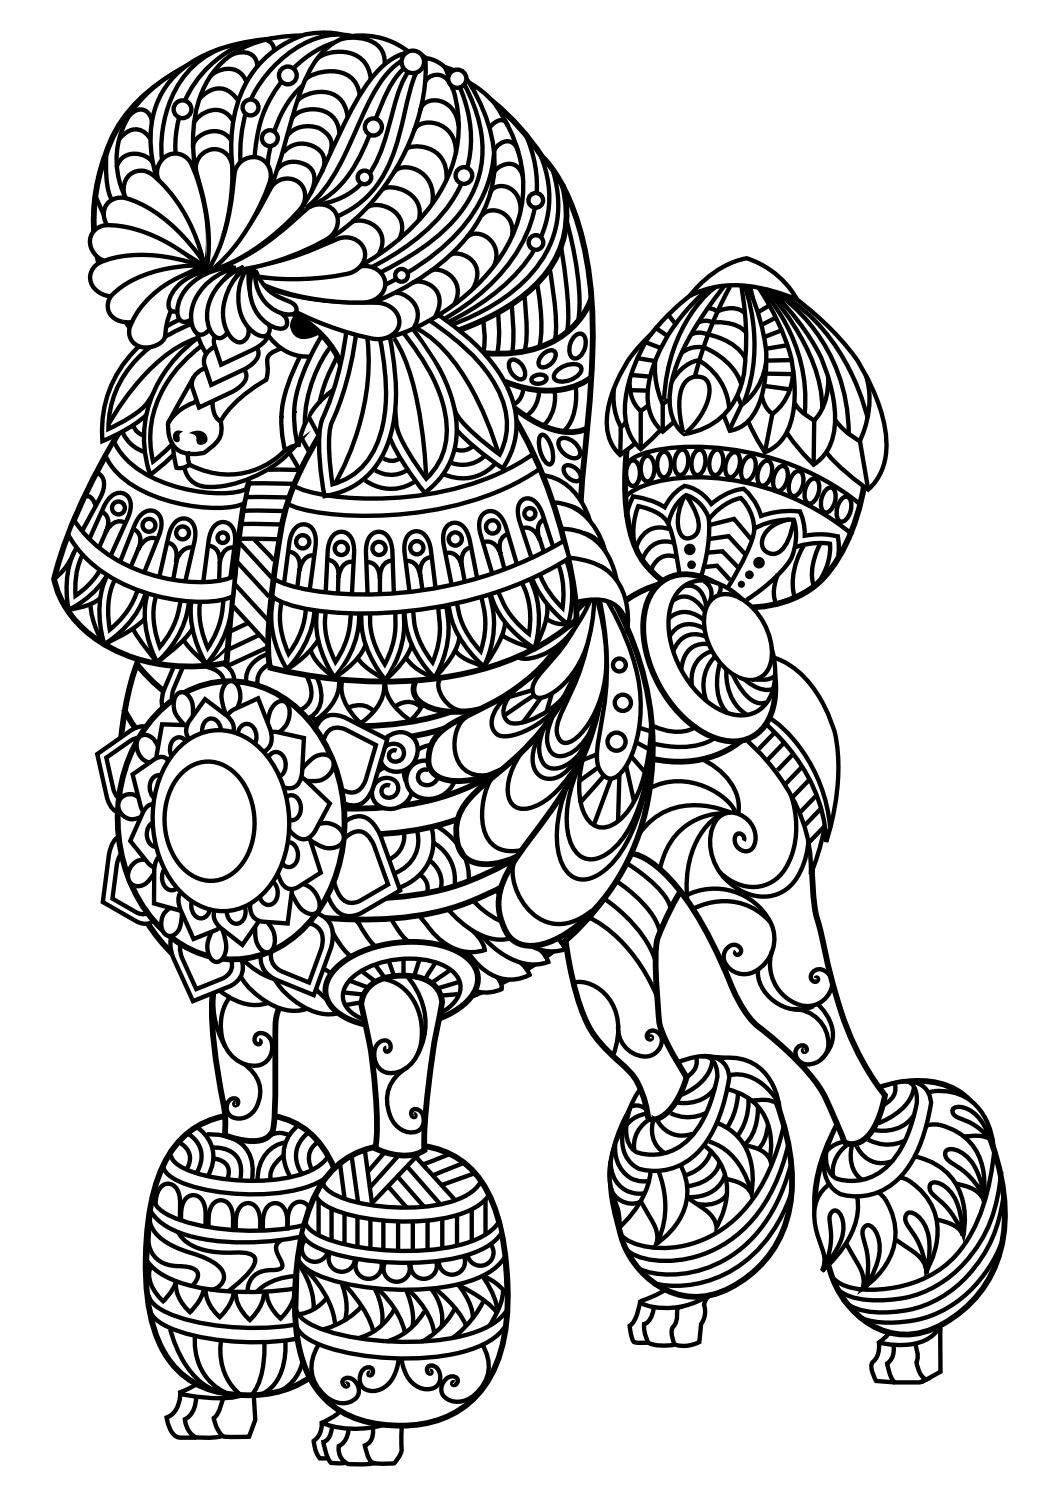 Coloring Farm Animals Colouring Pages Pdf Also Wild Animal | Adult - Free Printable Mandalas Pdf